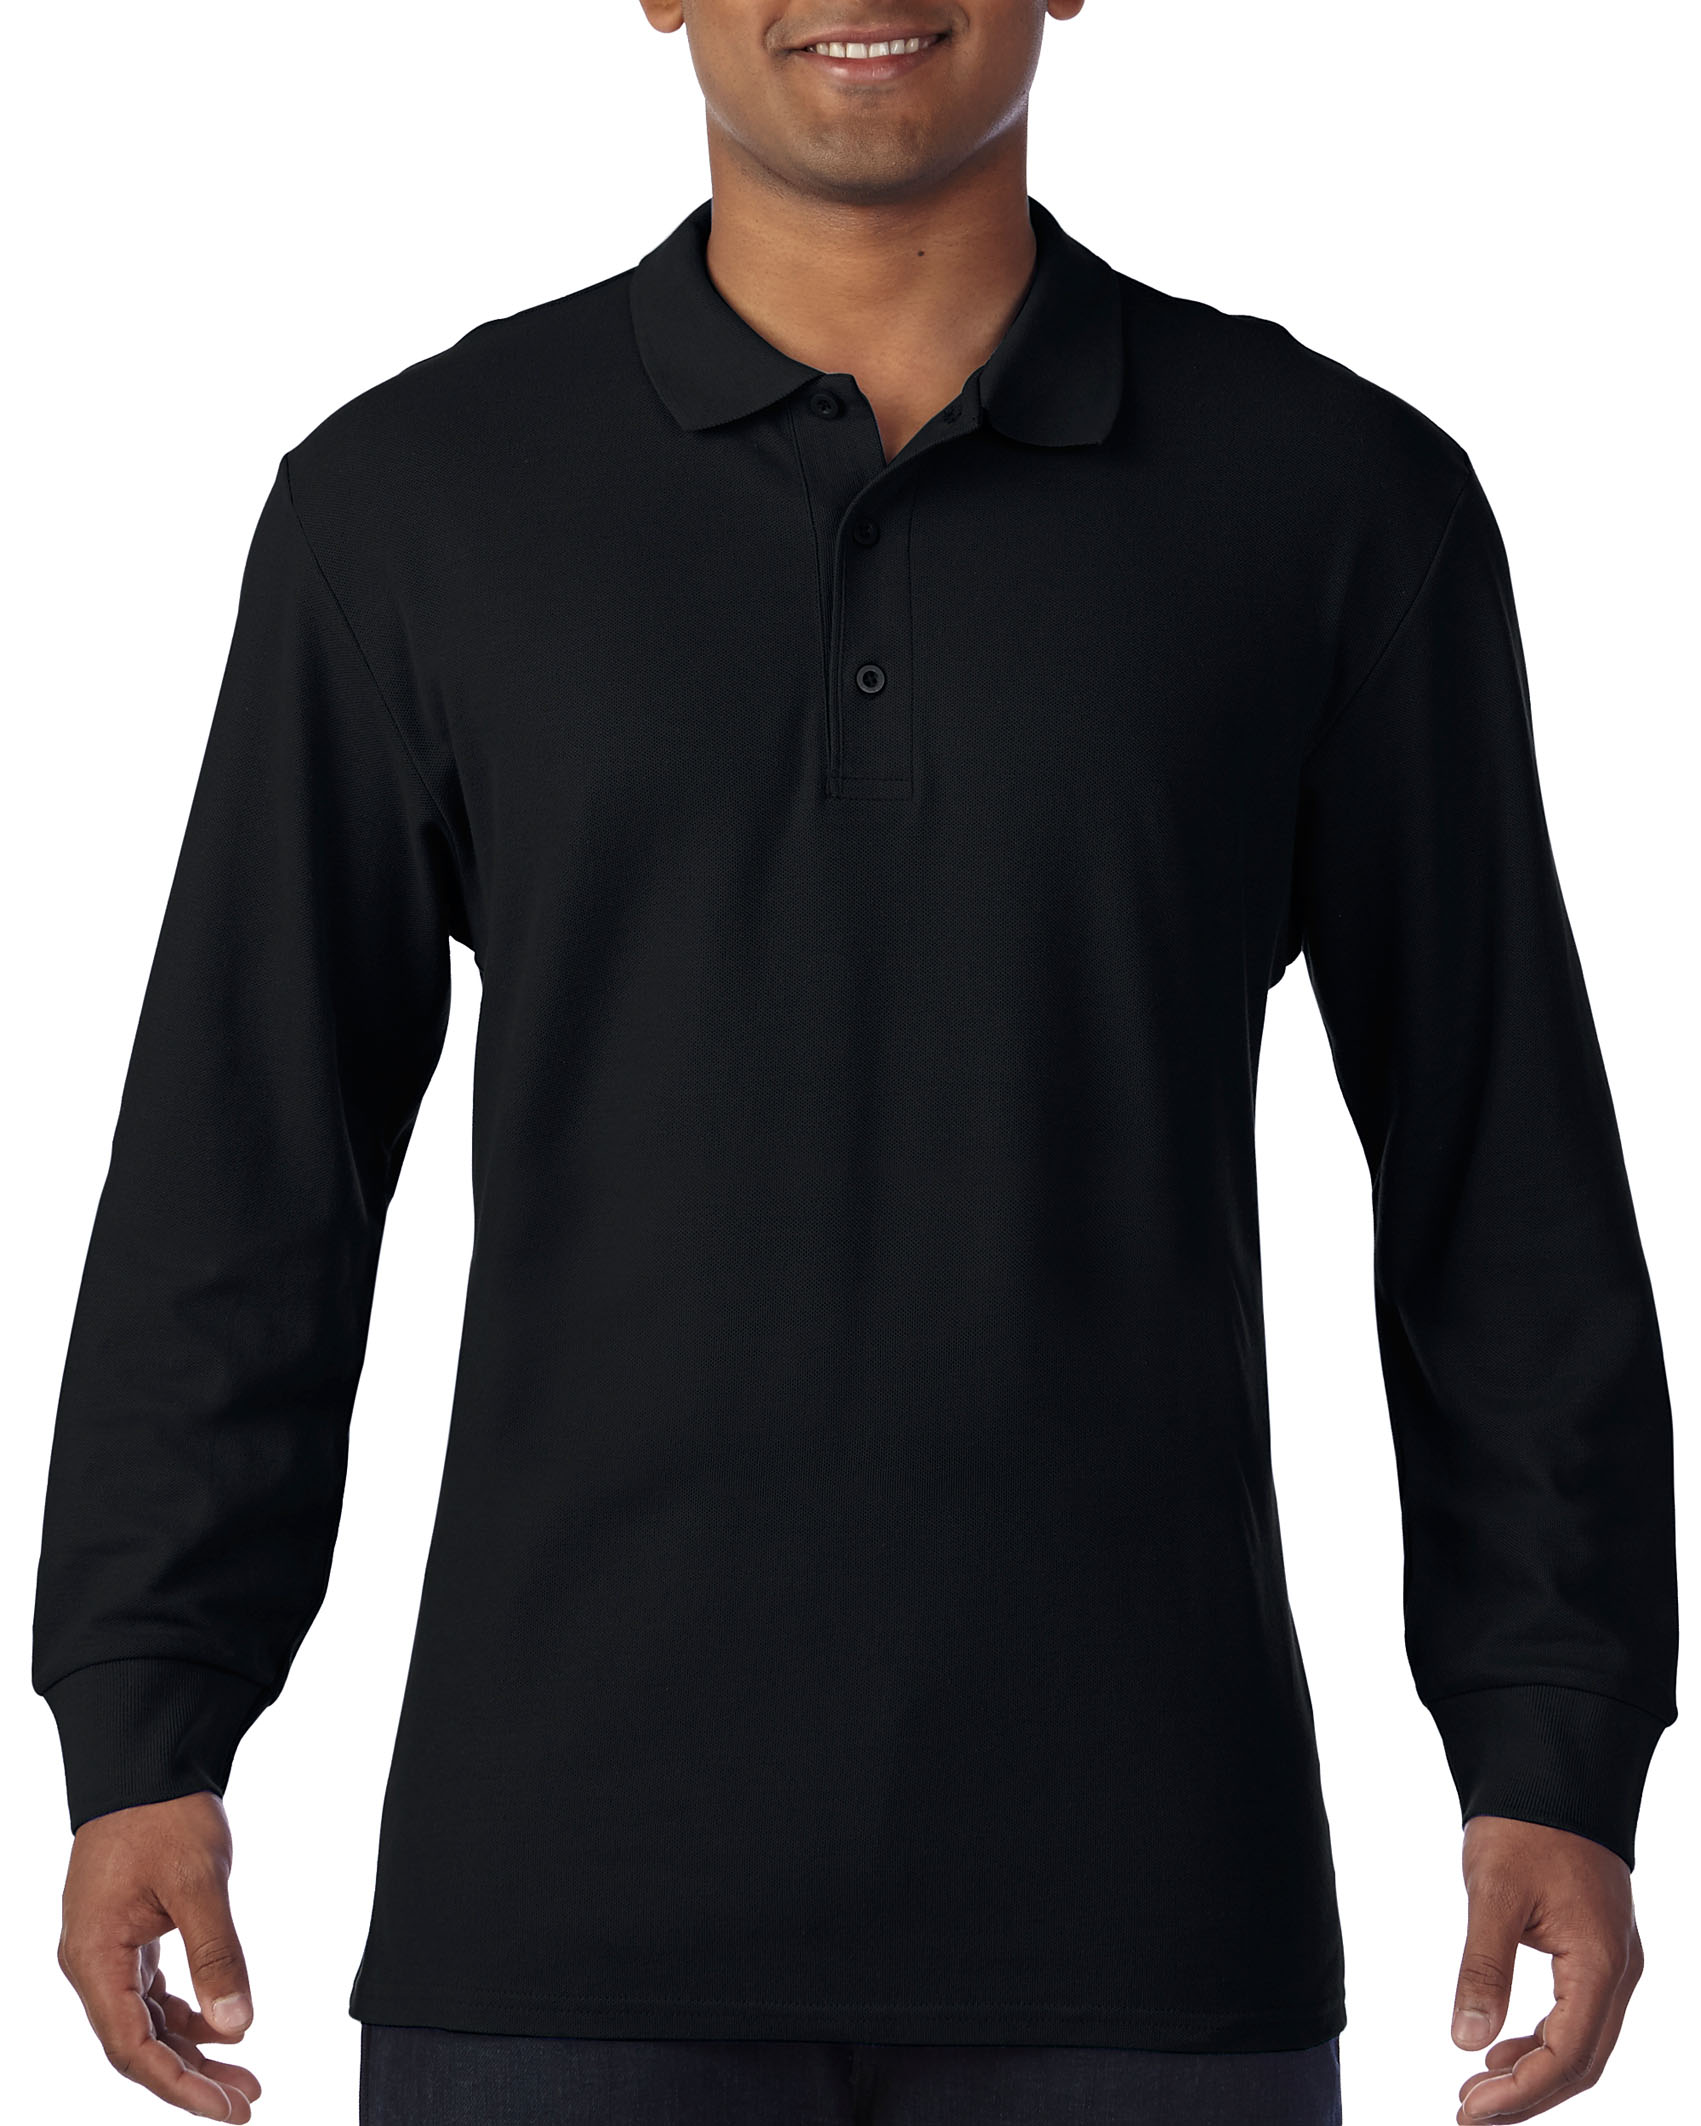 Gildan L/S Polo Premium Cotton for him